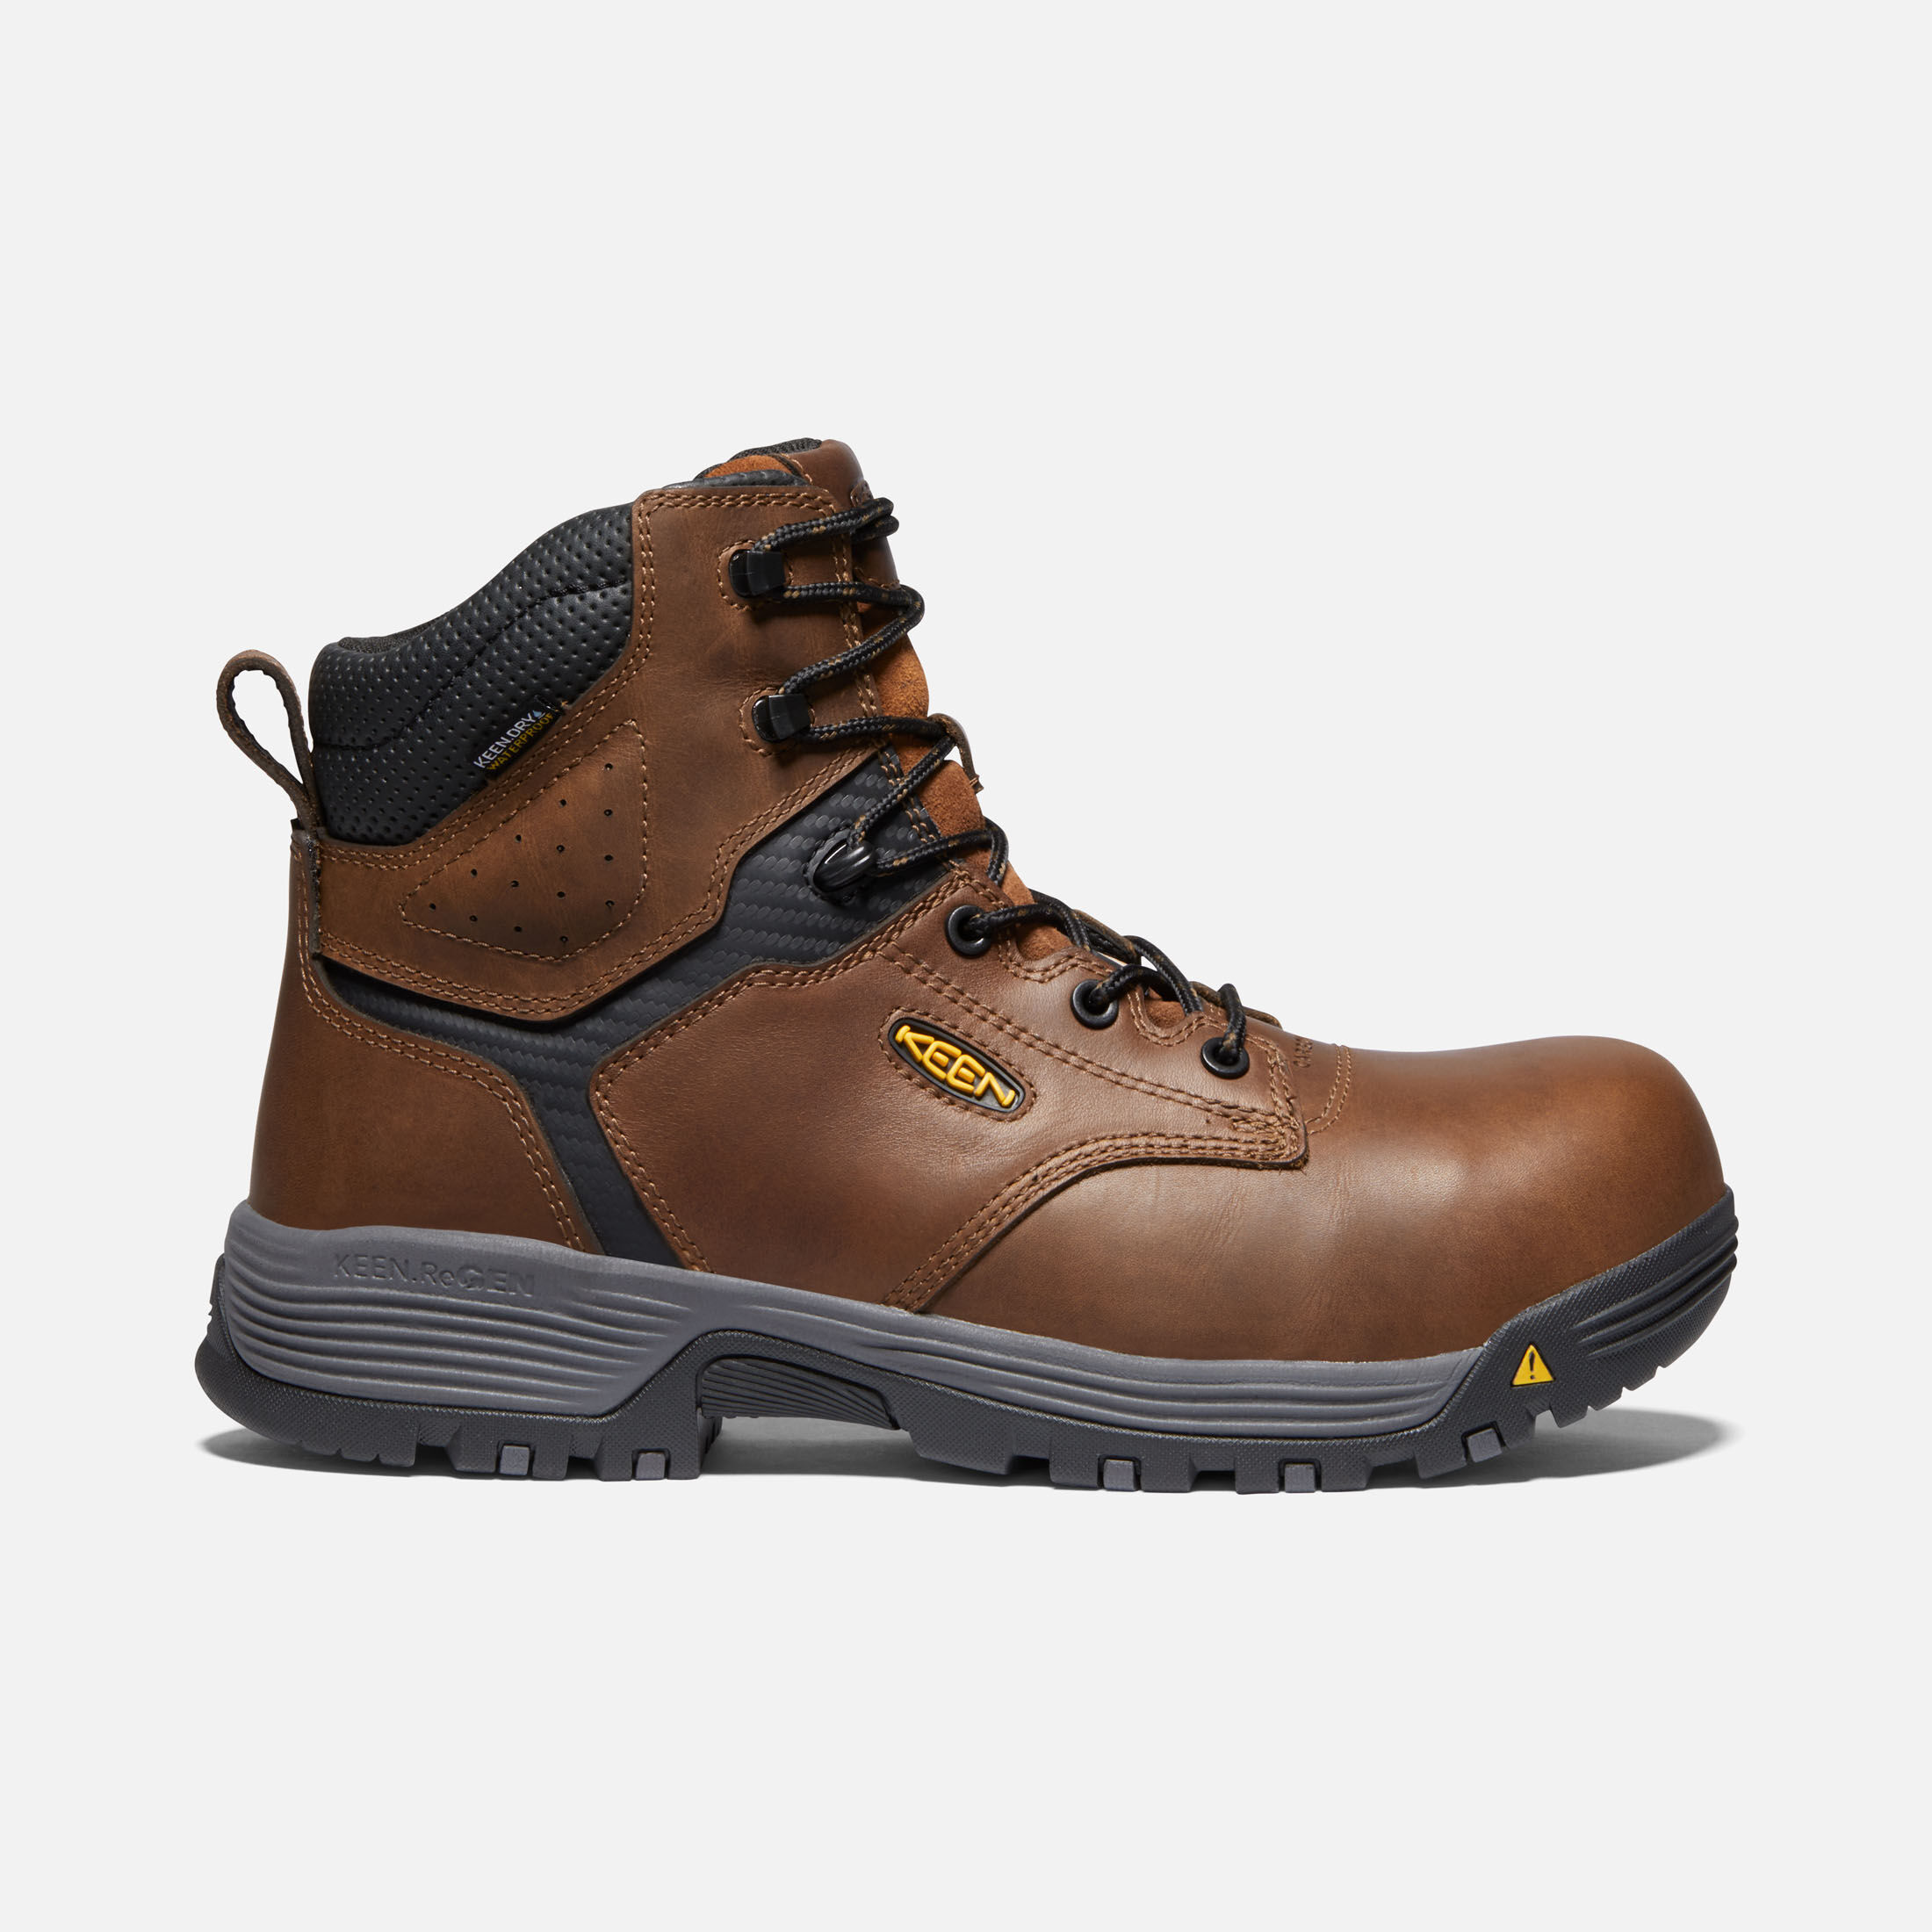 Men's Work Boots \u0026 Shoes - CSA Approved